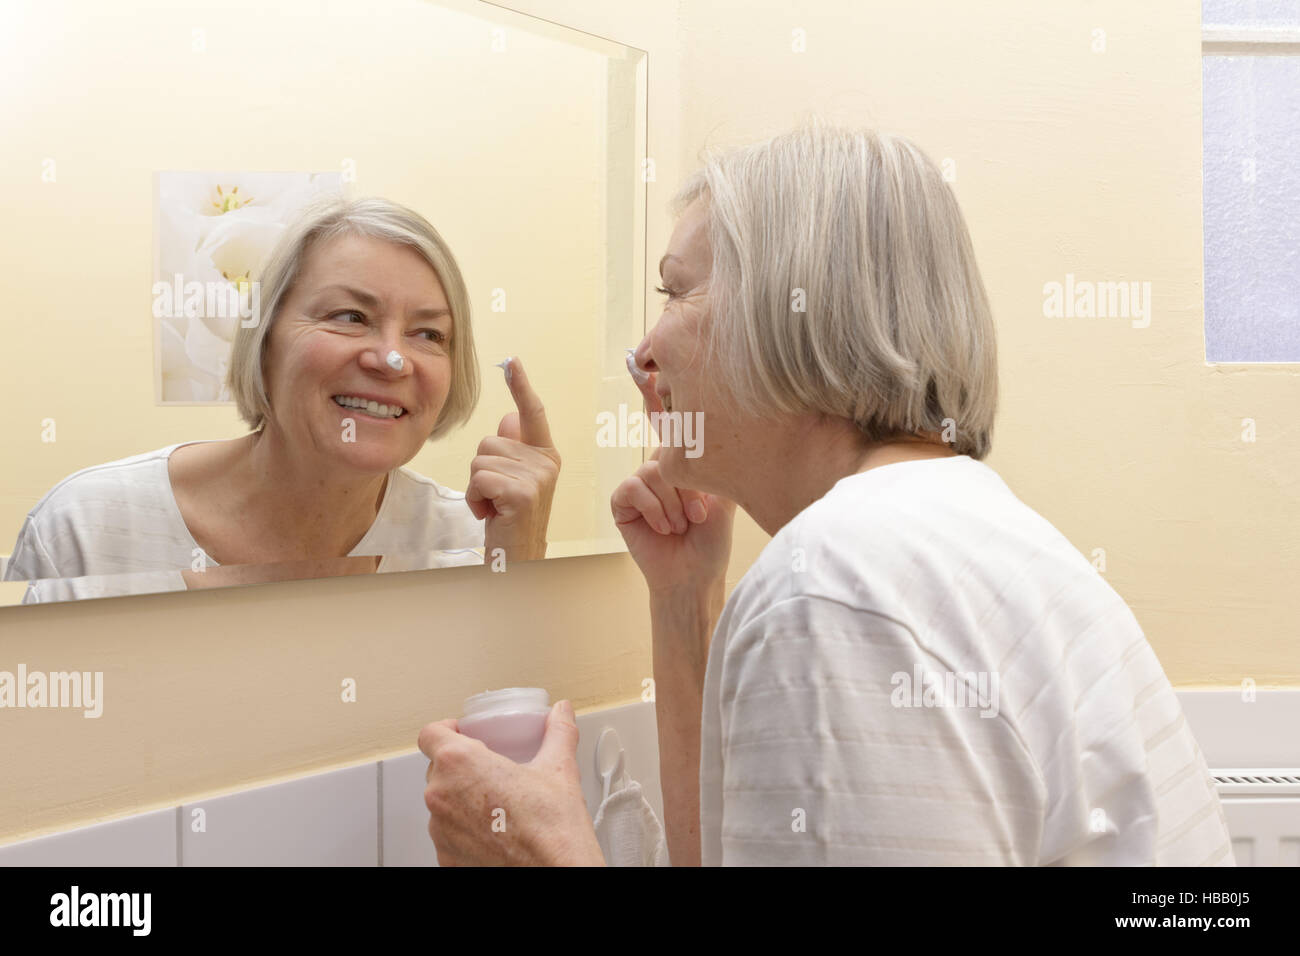 Old woman with a big smile and a cream spot on her nose in front of a mirror applying some moisturizer on her face - Stock Image